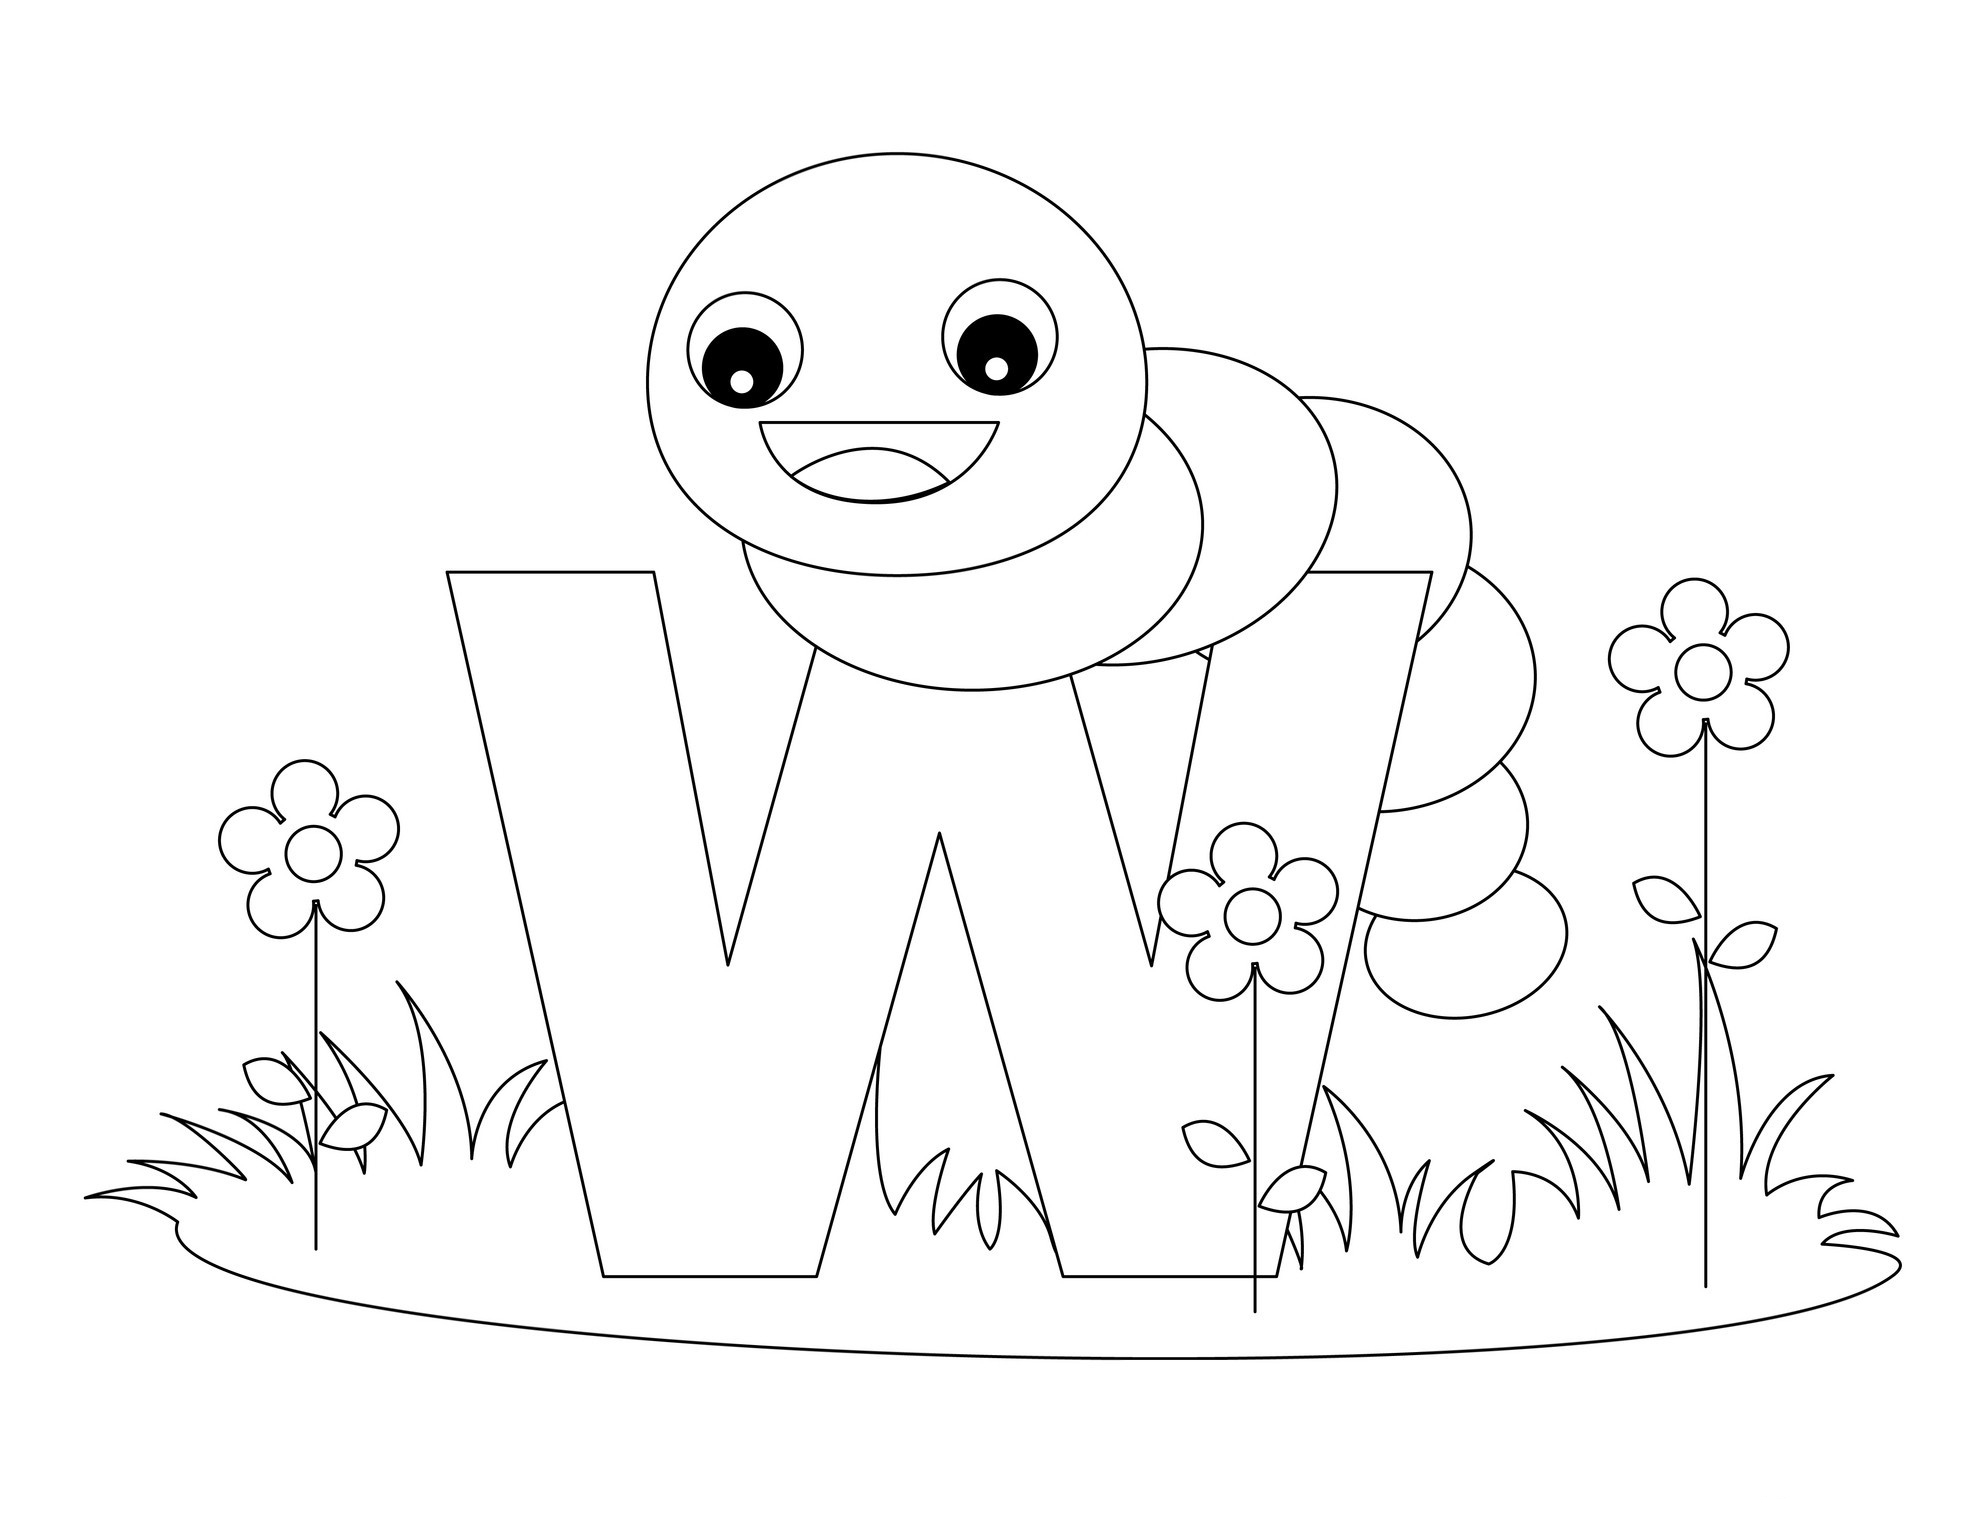 alphabet coloring pages for preschool - photo#30